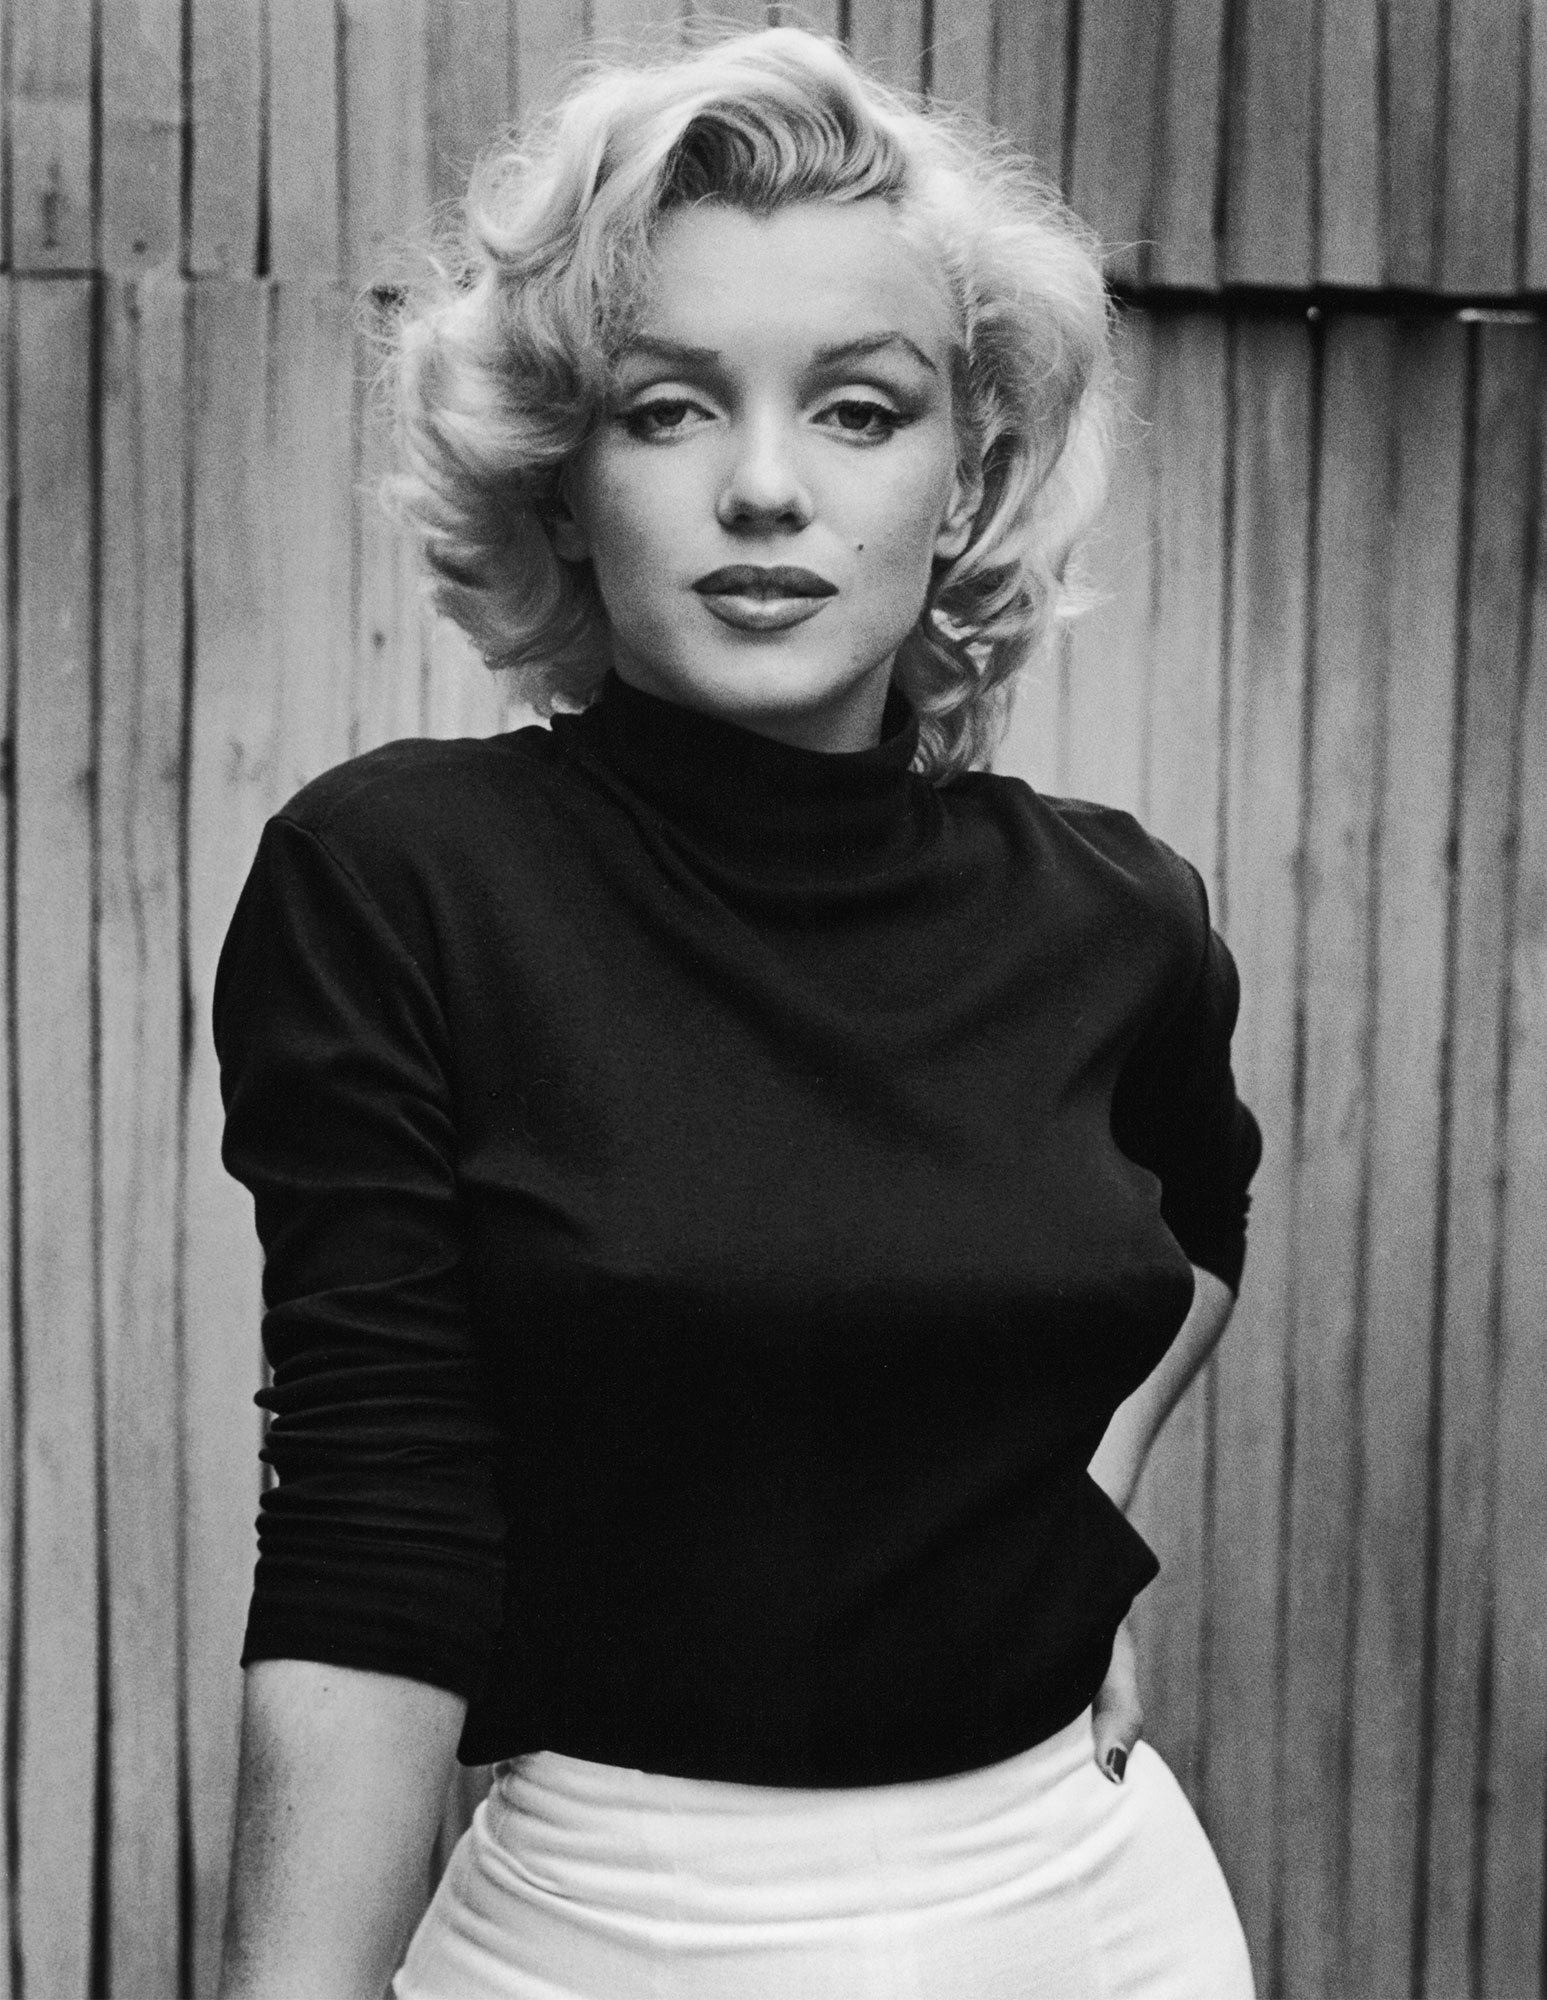 Sex, Drugs and Heartbreak: Marilyn Monroe's Secrets Uncovered in New Documentary